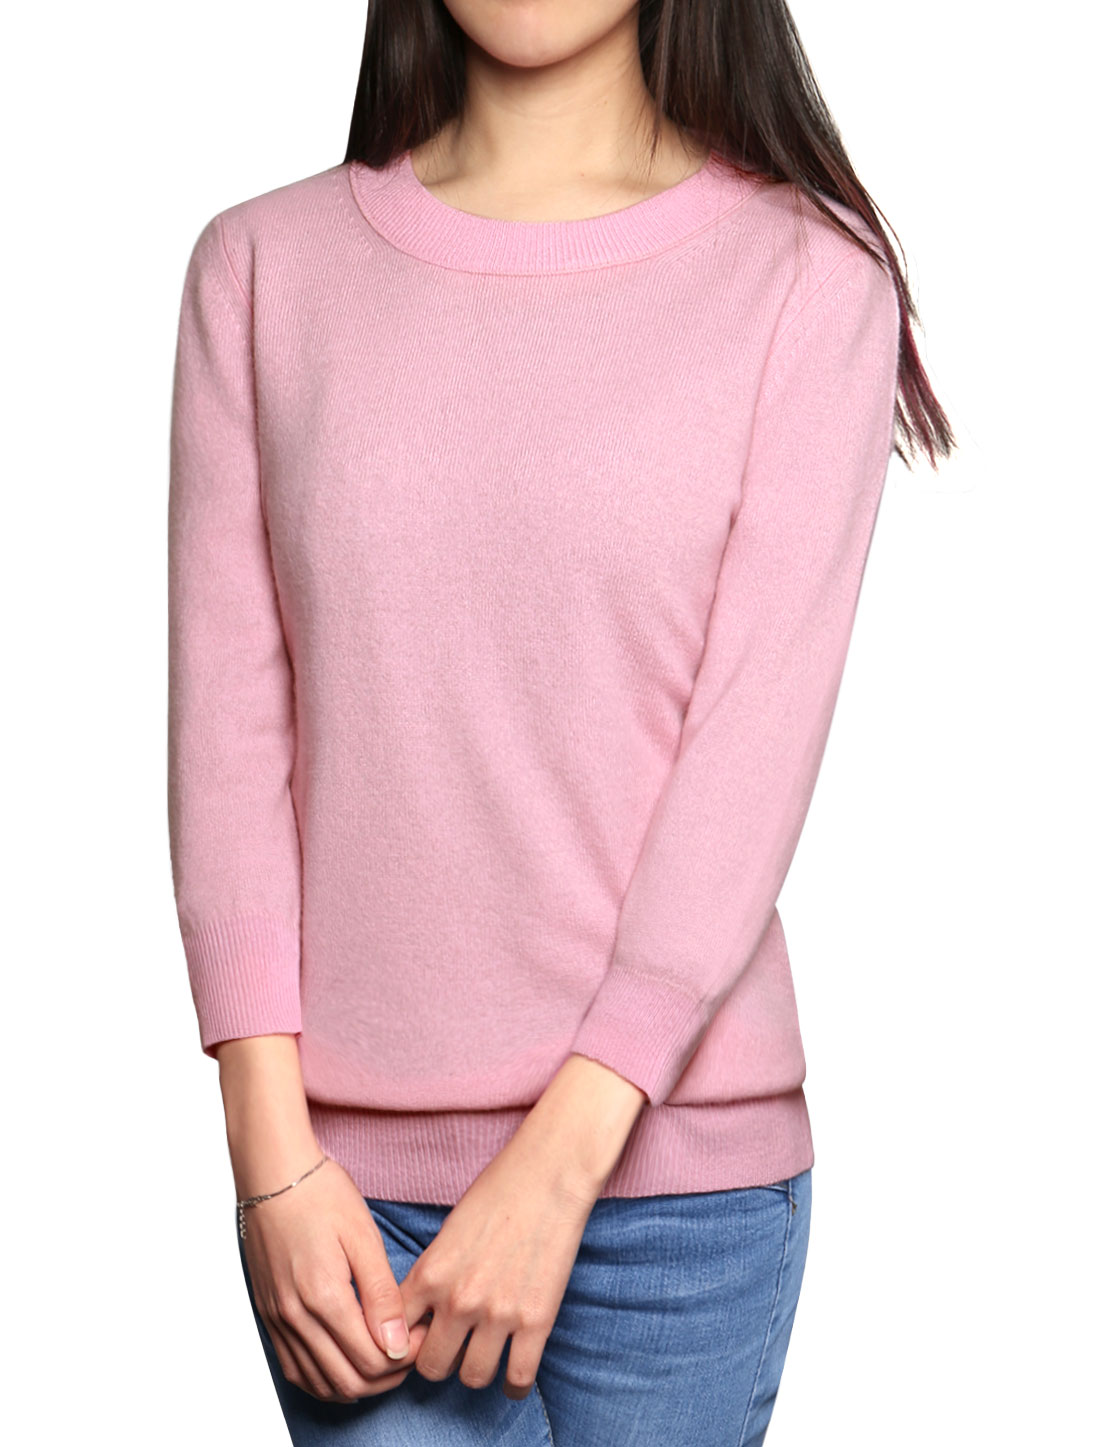 Women Classic 3/4 Sleeves Cashmere Sweater Jumper Pink XL